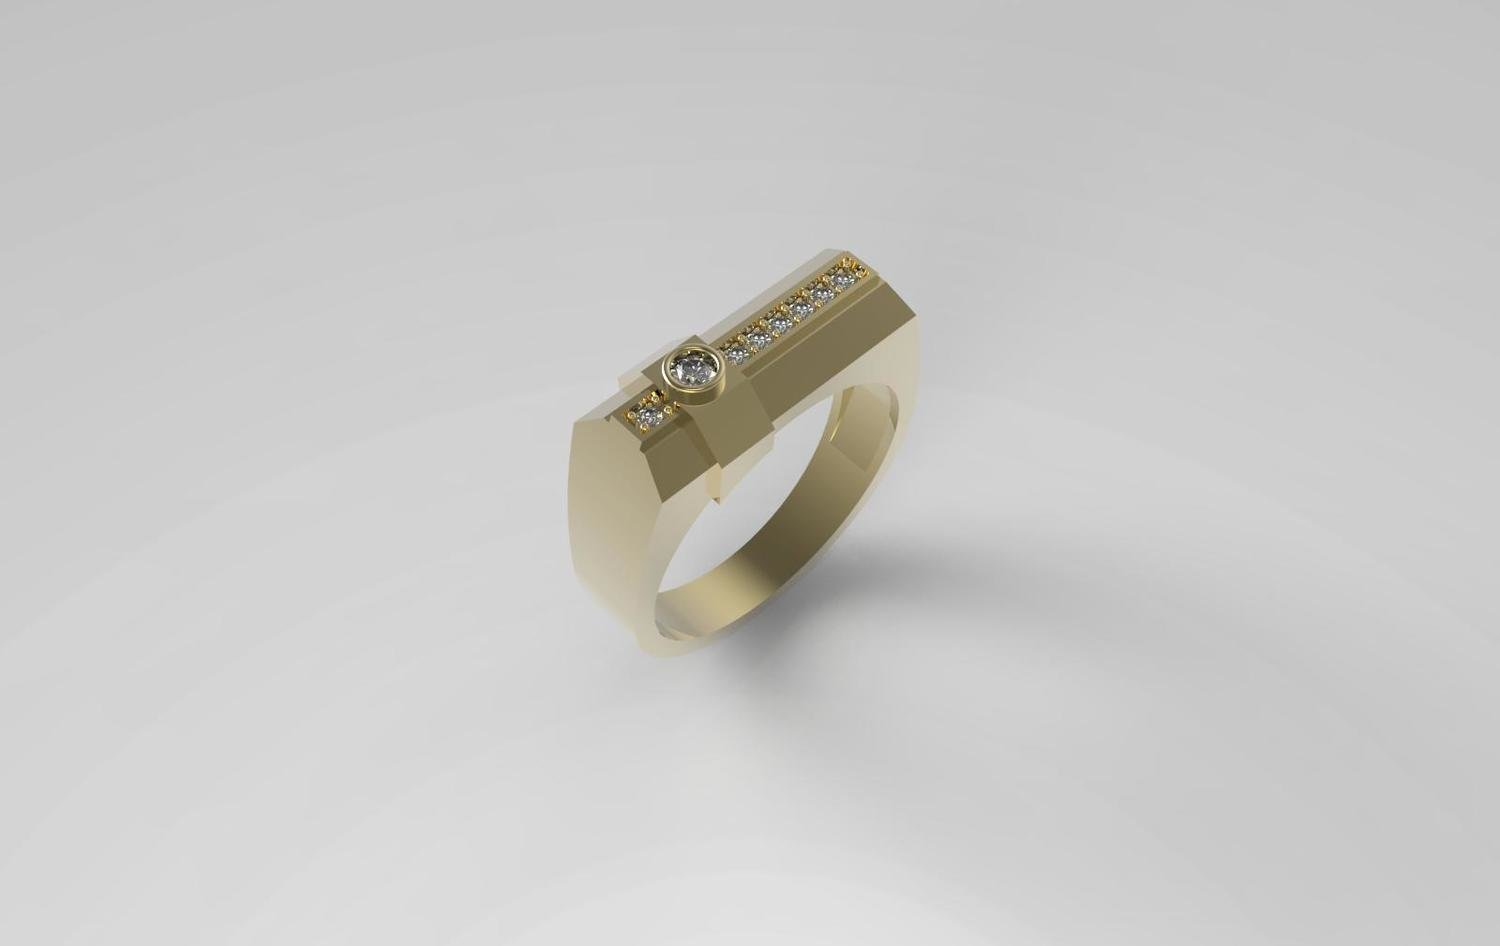 3D Model of Men's Signet Ring with Diamonds